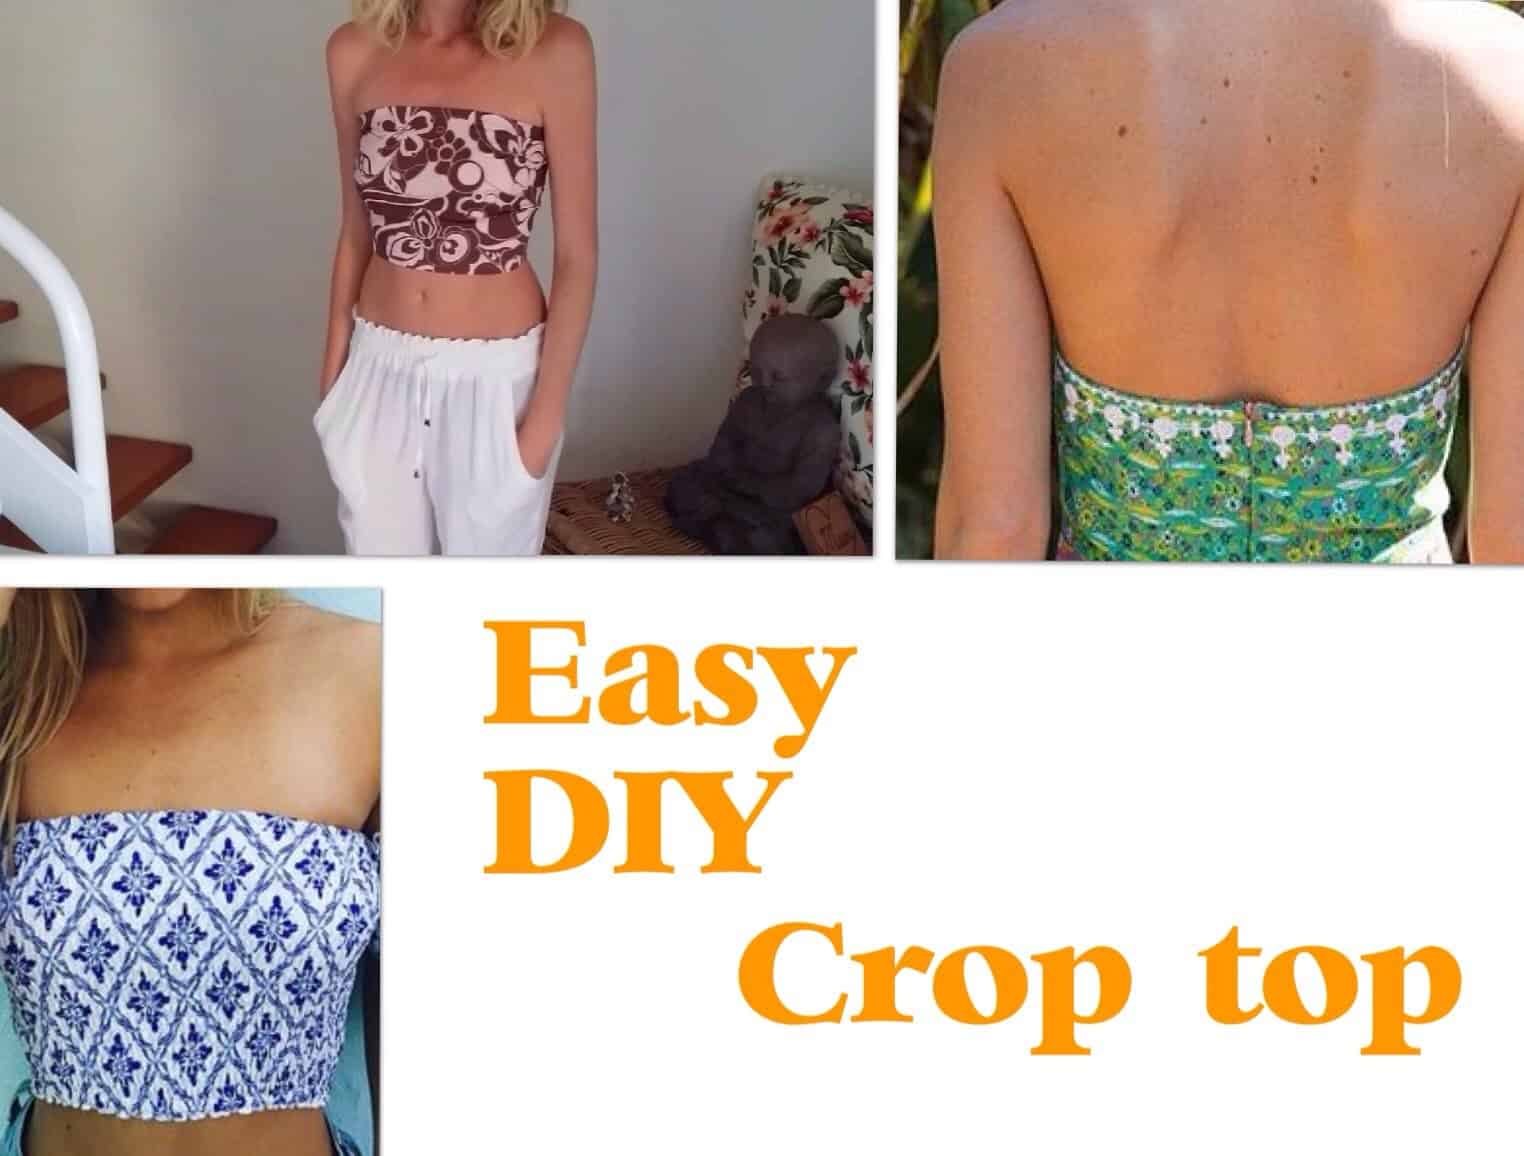 Easy diy bustier with a zipper